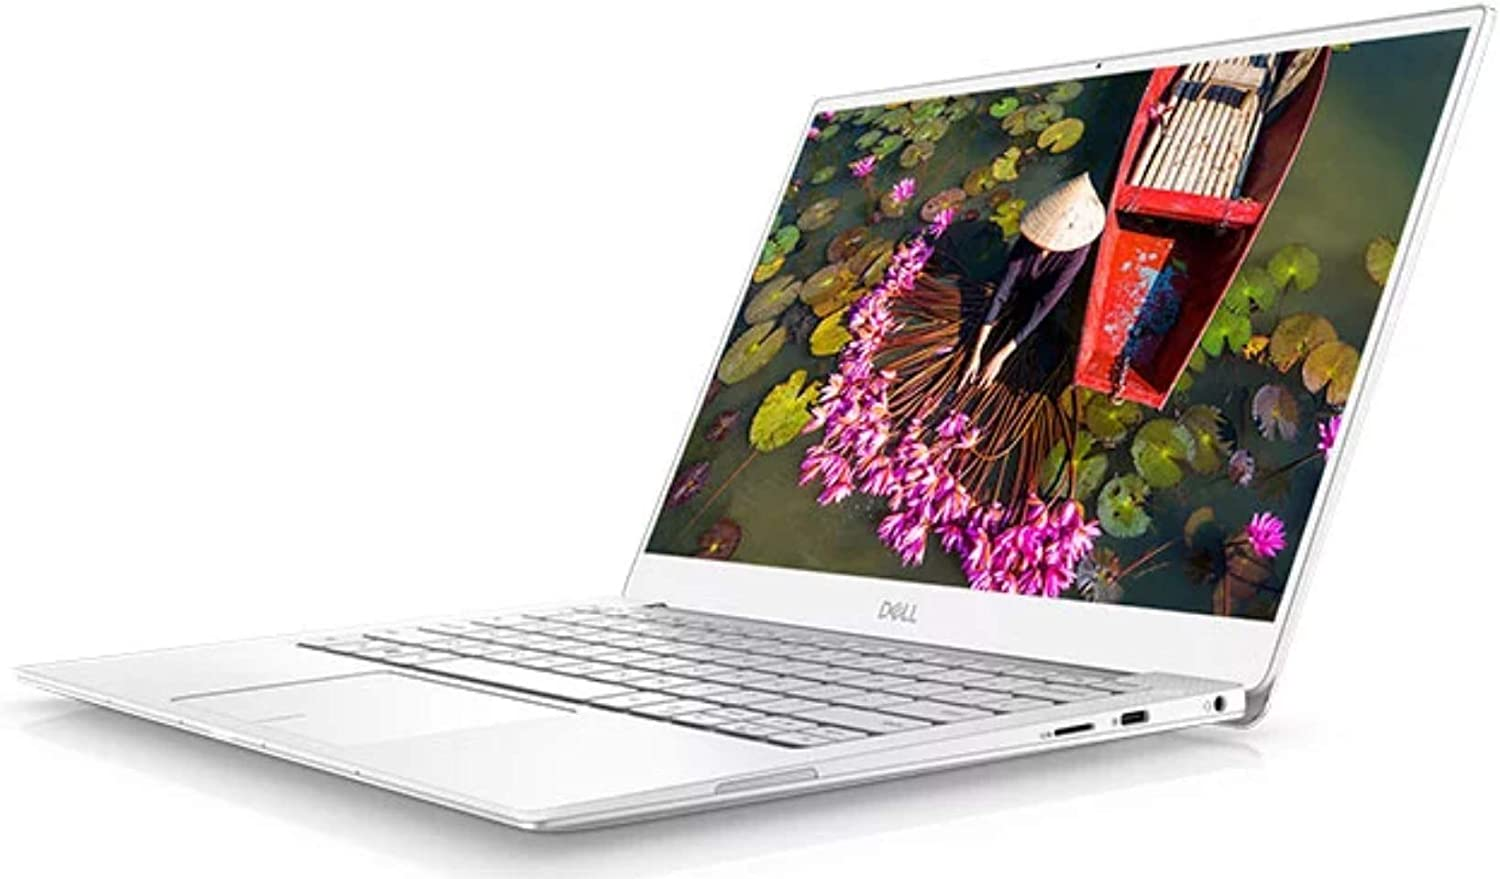 "Dell XPS 9380 Laptop, 13.3"" 4K UHD (3840x2160) Touchscreen, Intel Core 8th Gen i7-8565U, 16GB RAM, 512 GB PCIe SSD, Windows 10 Home, Frost White (Renewed)"